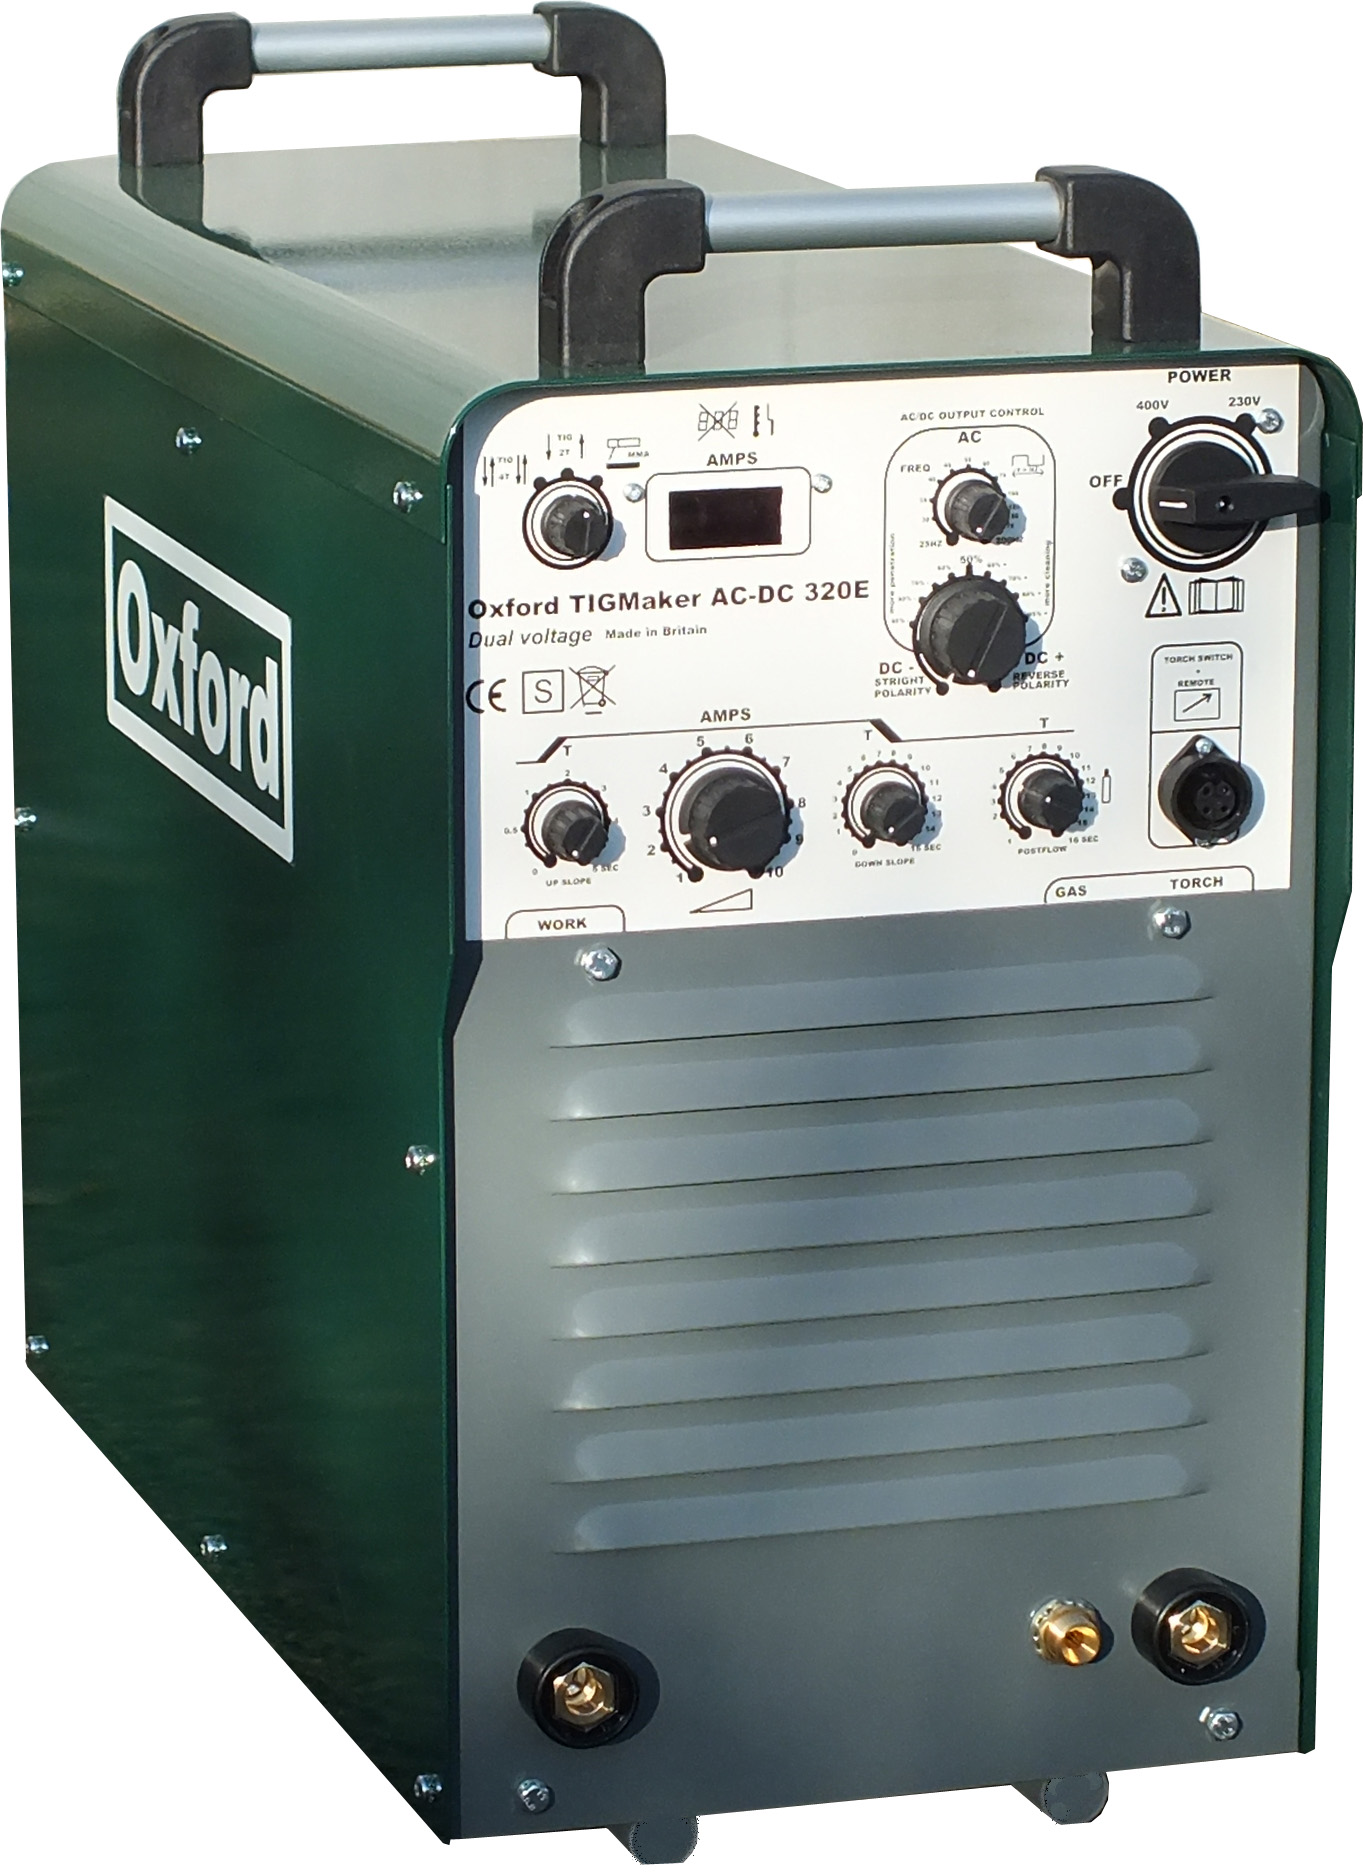 Oxford  TIGMaker 220E dual voltage 110V/230V